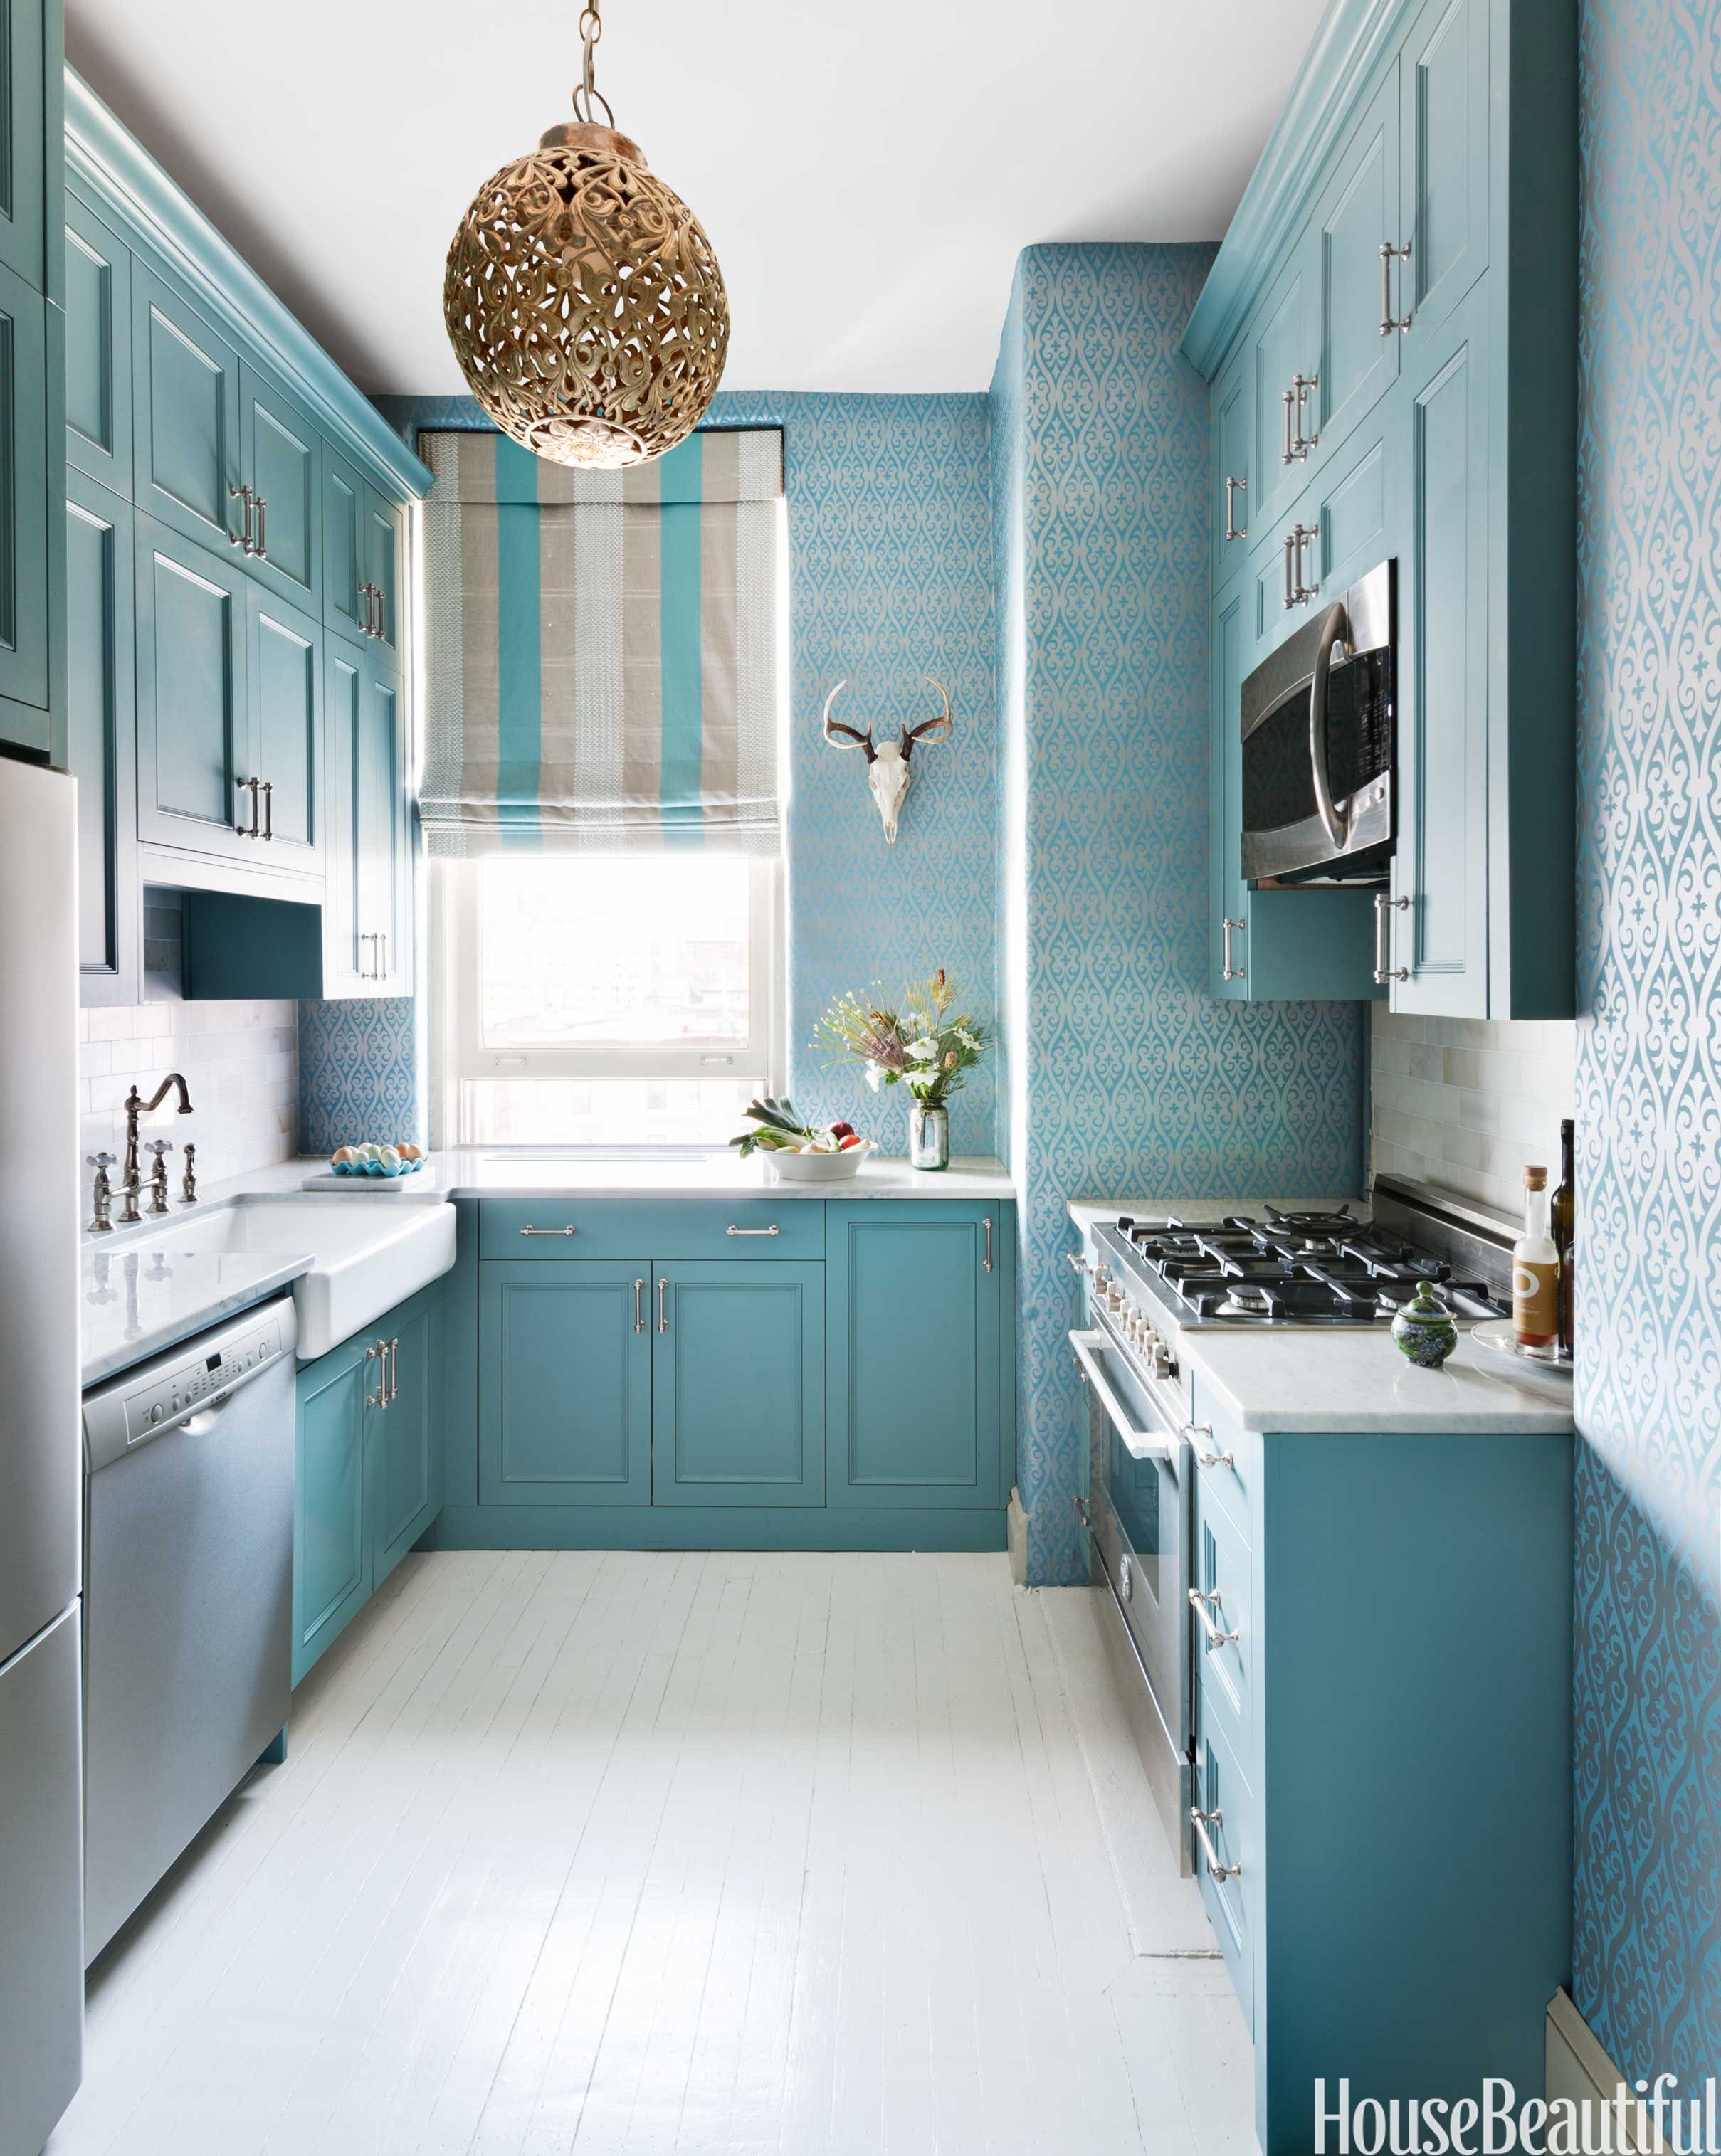 50 Clever Small Kitchen Ideas to Steal Stylish kitchen